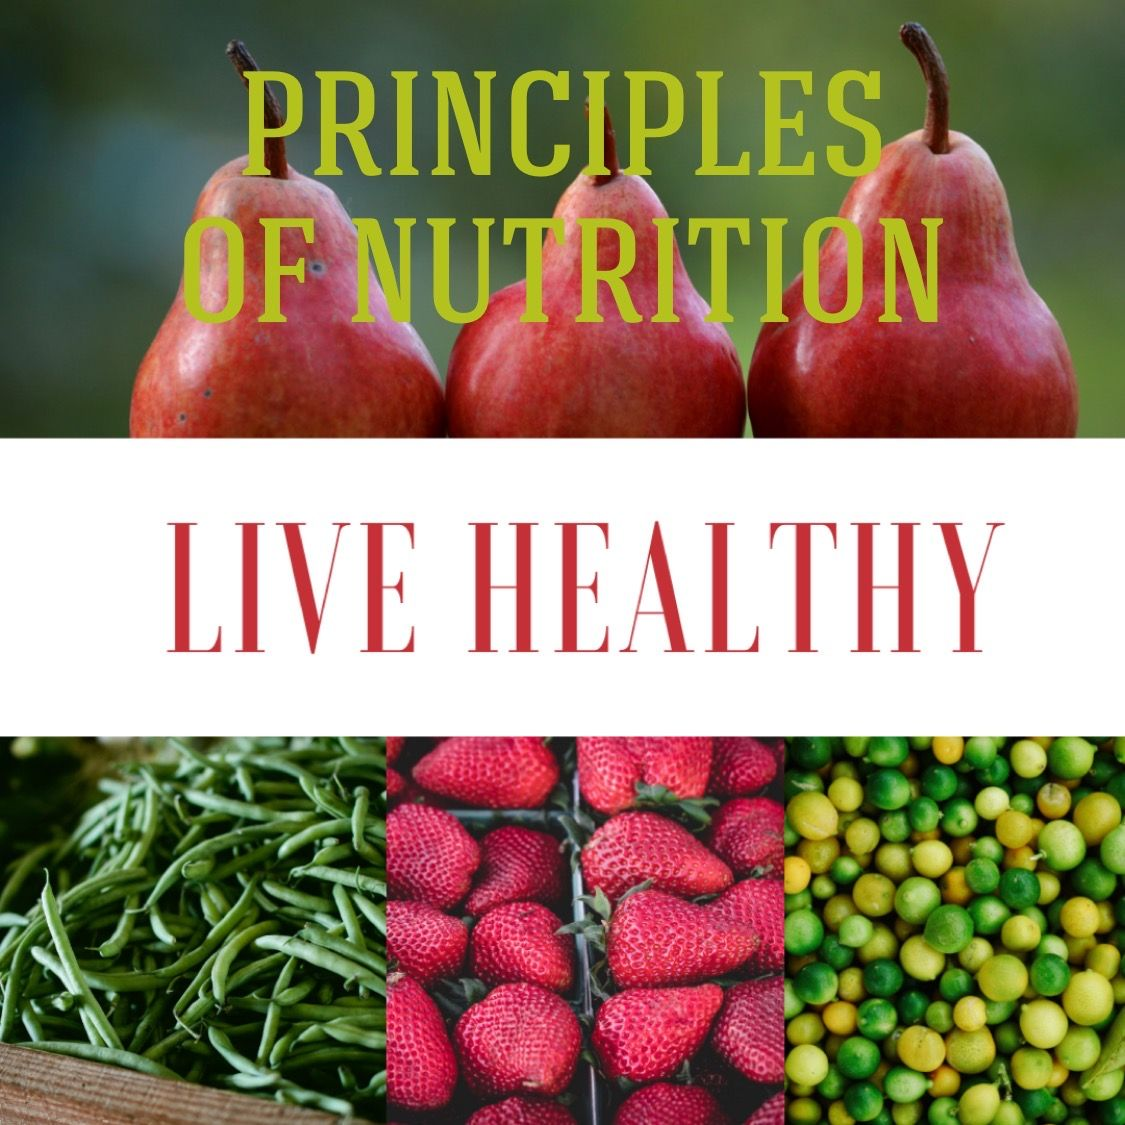 Get Back To Basics In 2020 Health And Wellness Nutrition Healthy Lifestyle